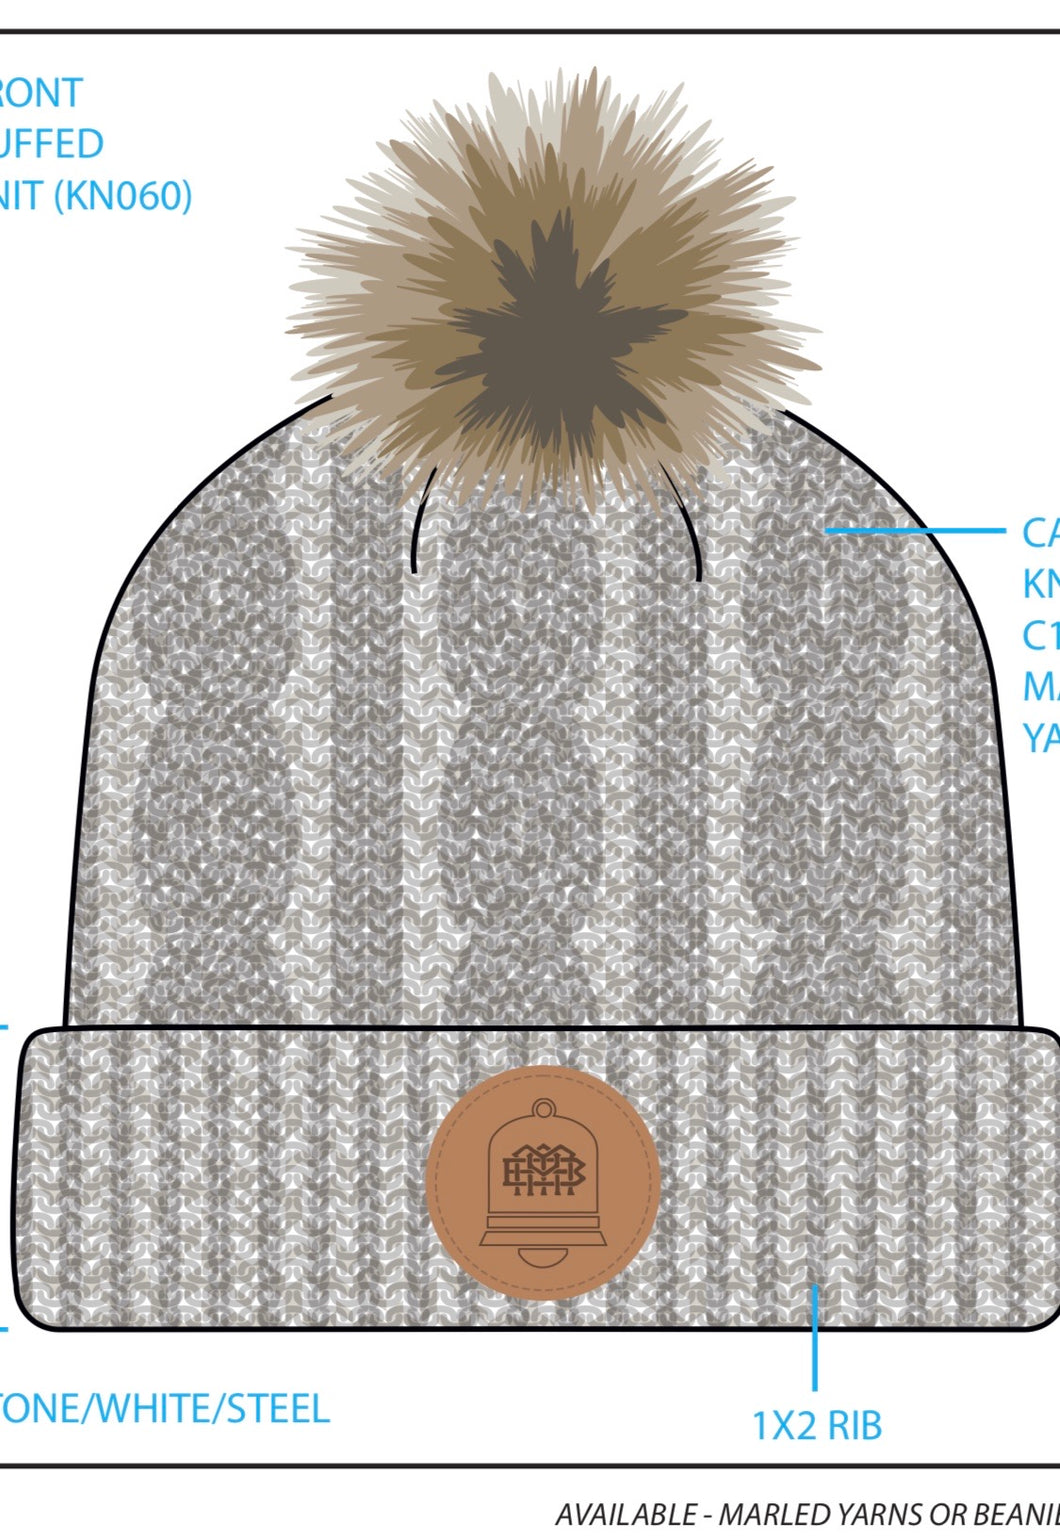 Coming soon! Cuffed Cable Knit Ivory Pom-Pom Beanie with custom leather patch